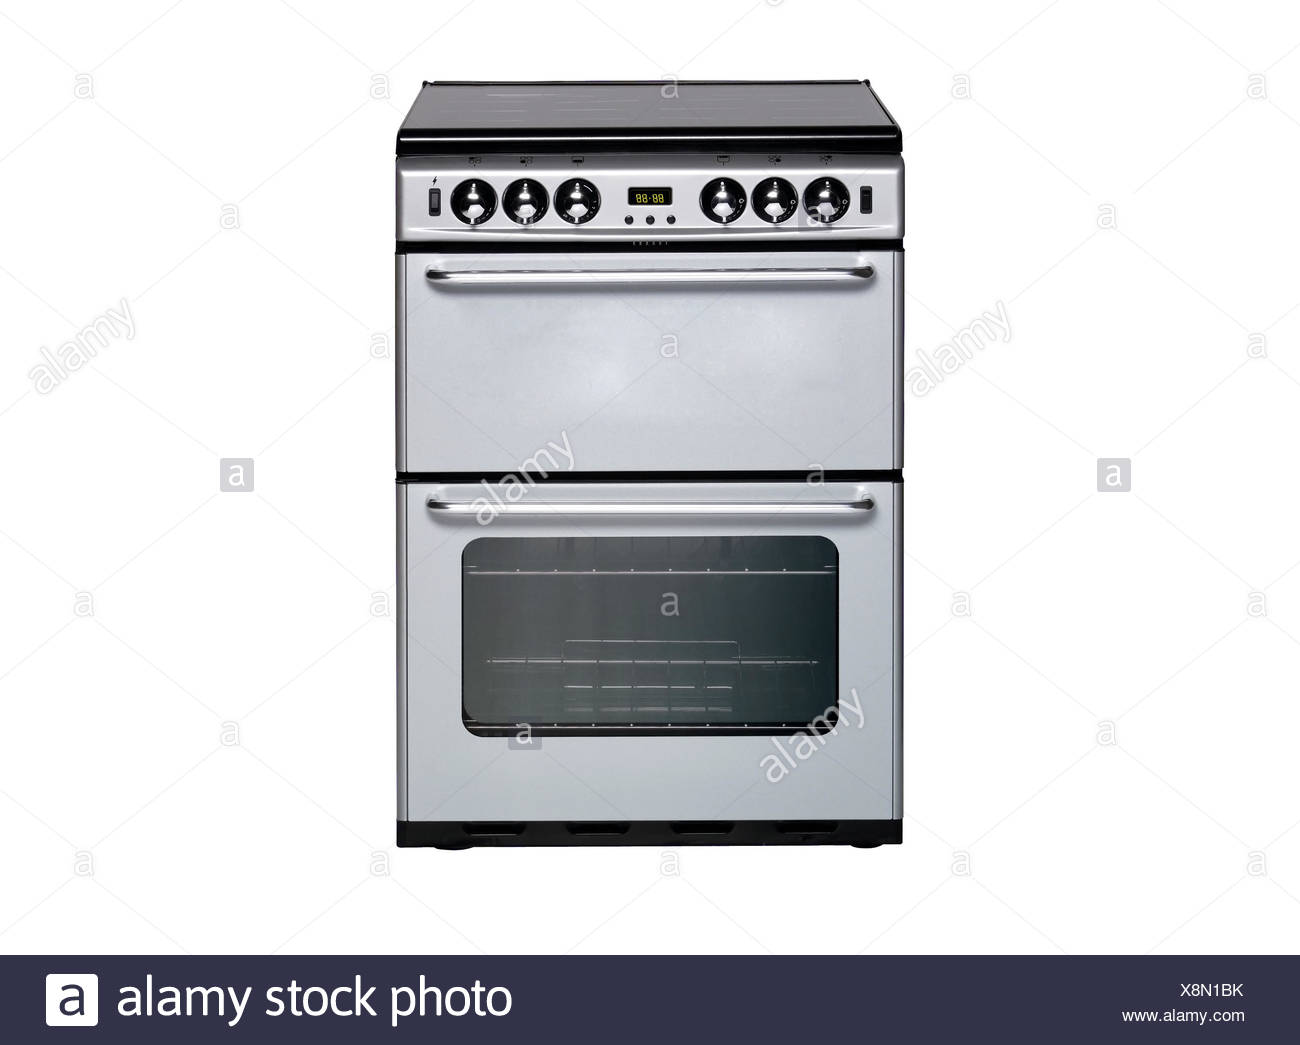 white gas cooker over the white background - Stock Image